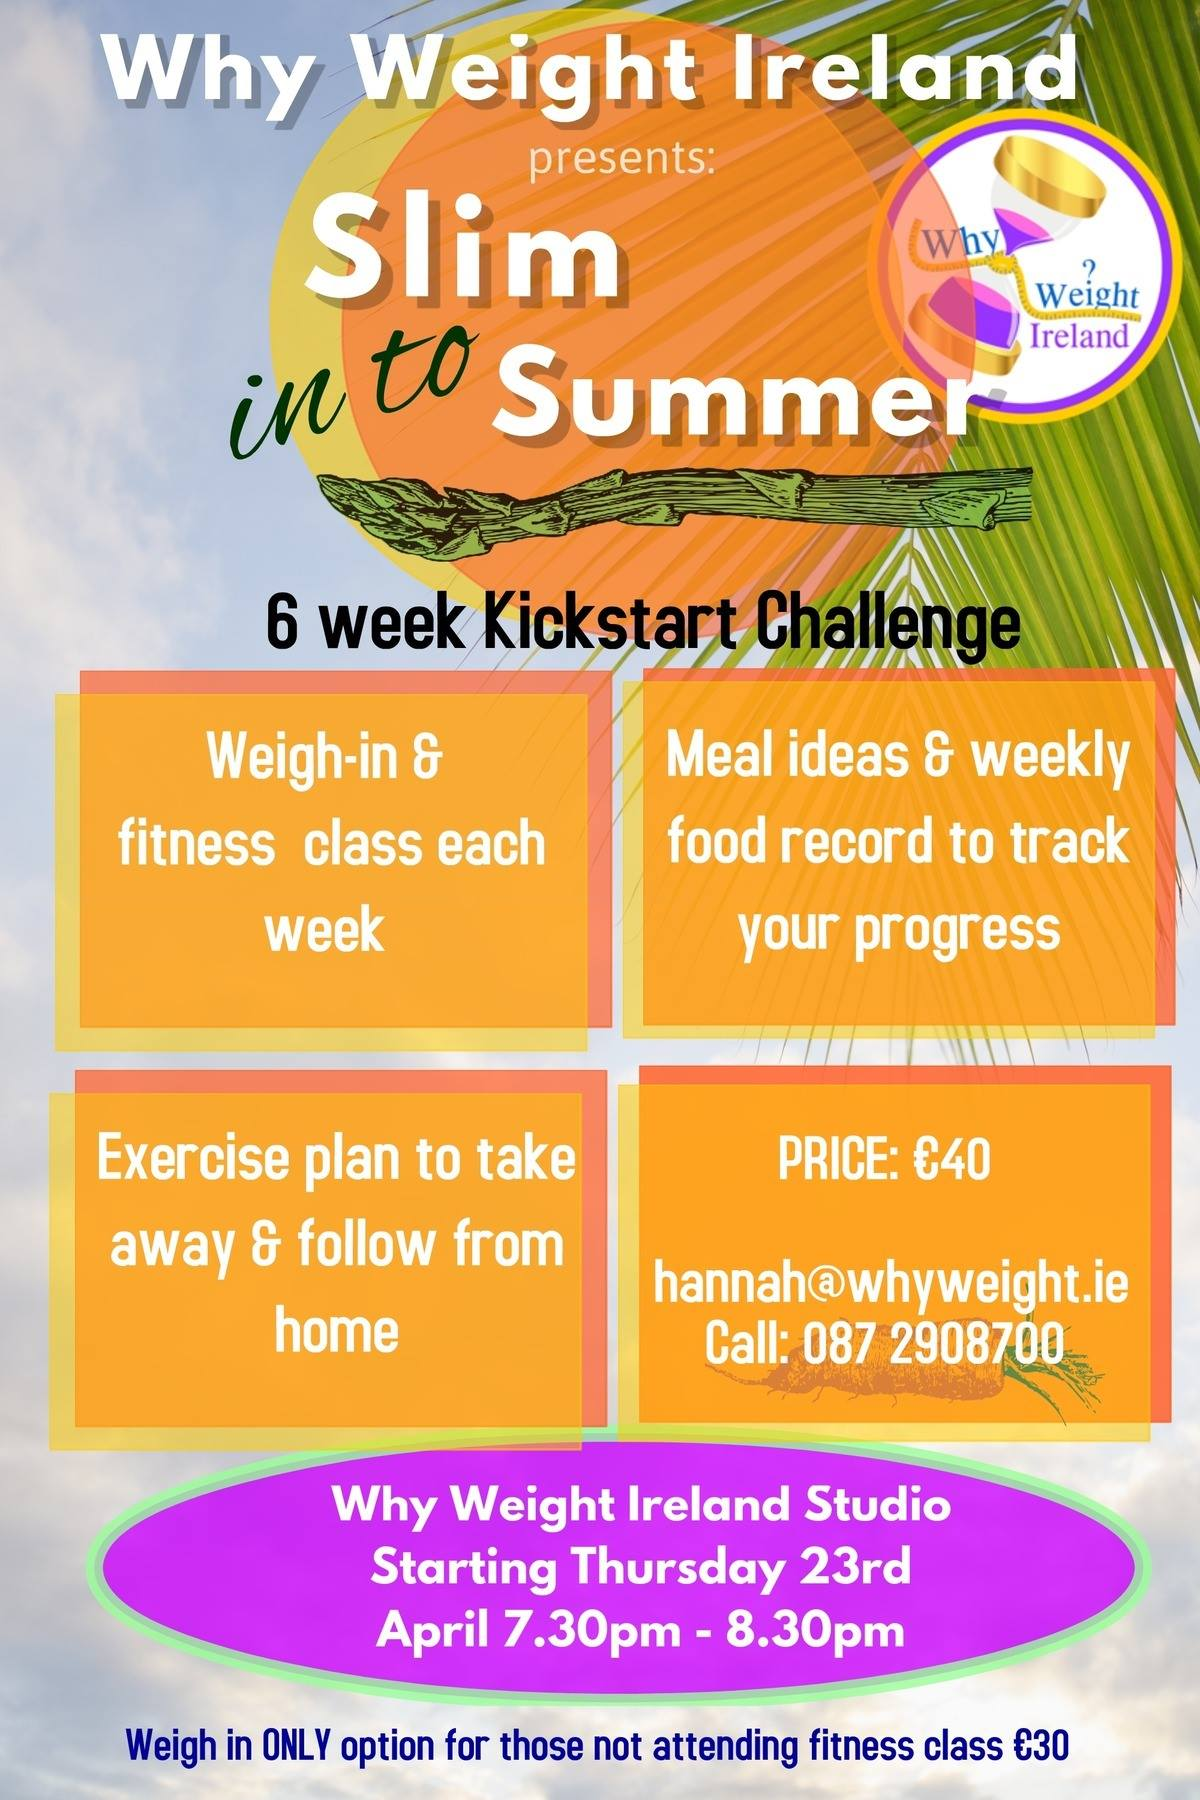 Slim in to summer with Why Weight Ireland